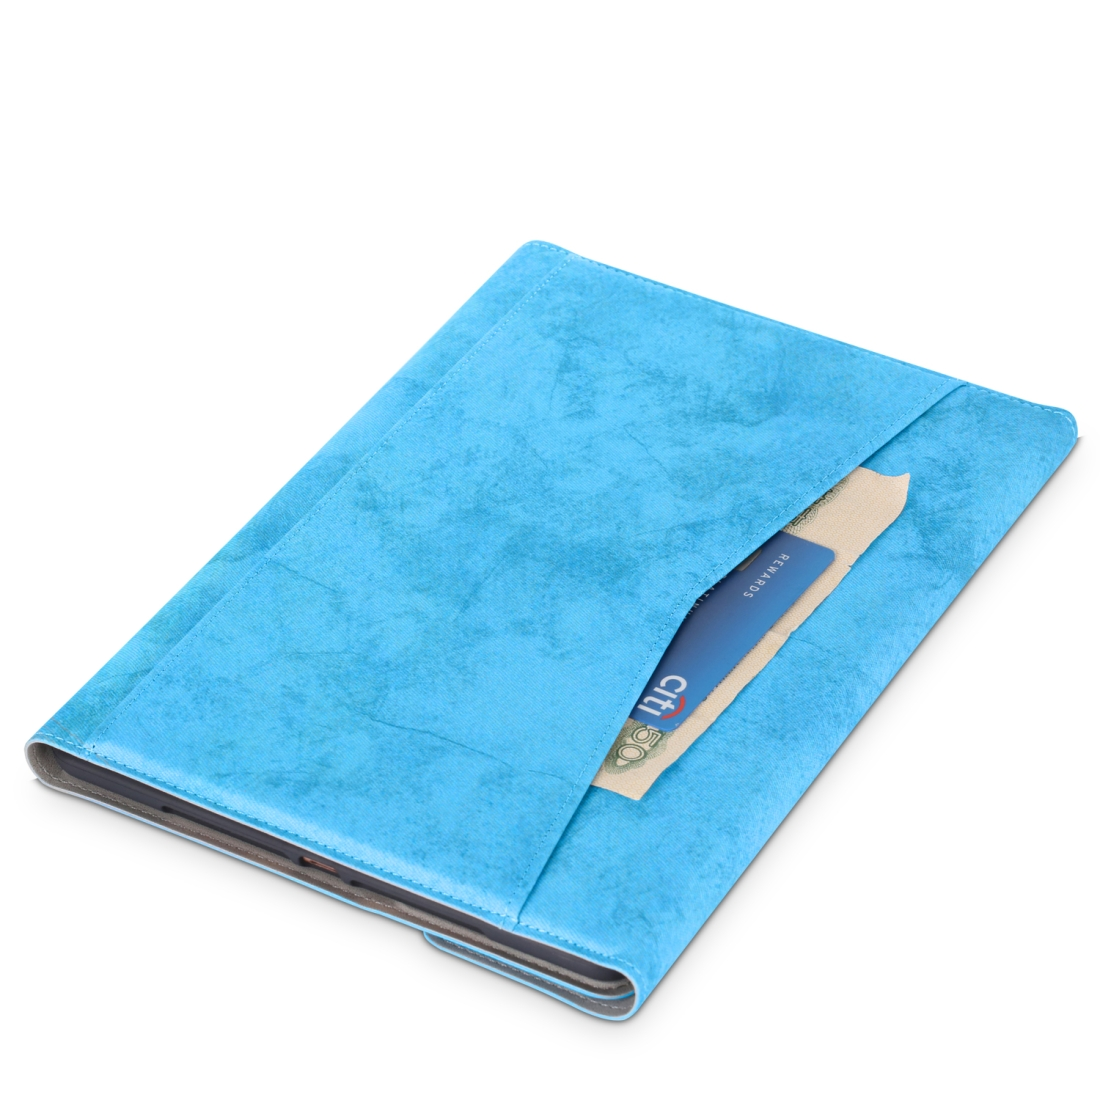 iPad Air 2 Case For iPad Air /Air 2 (2019), Leather Case Without Keyboard (Sky Blue)